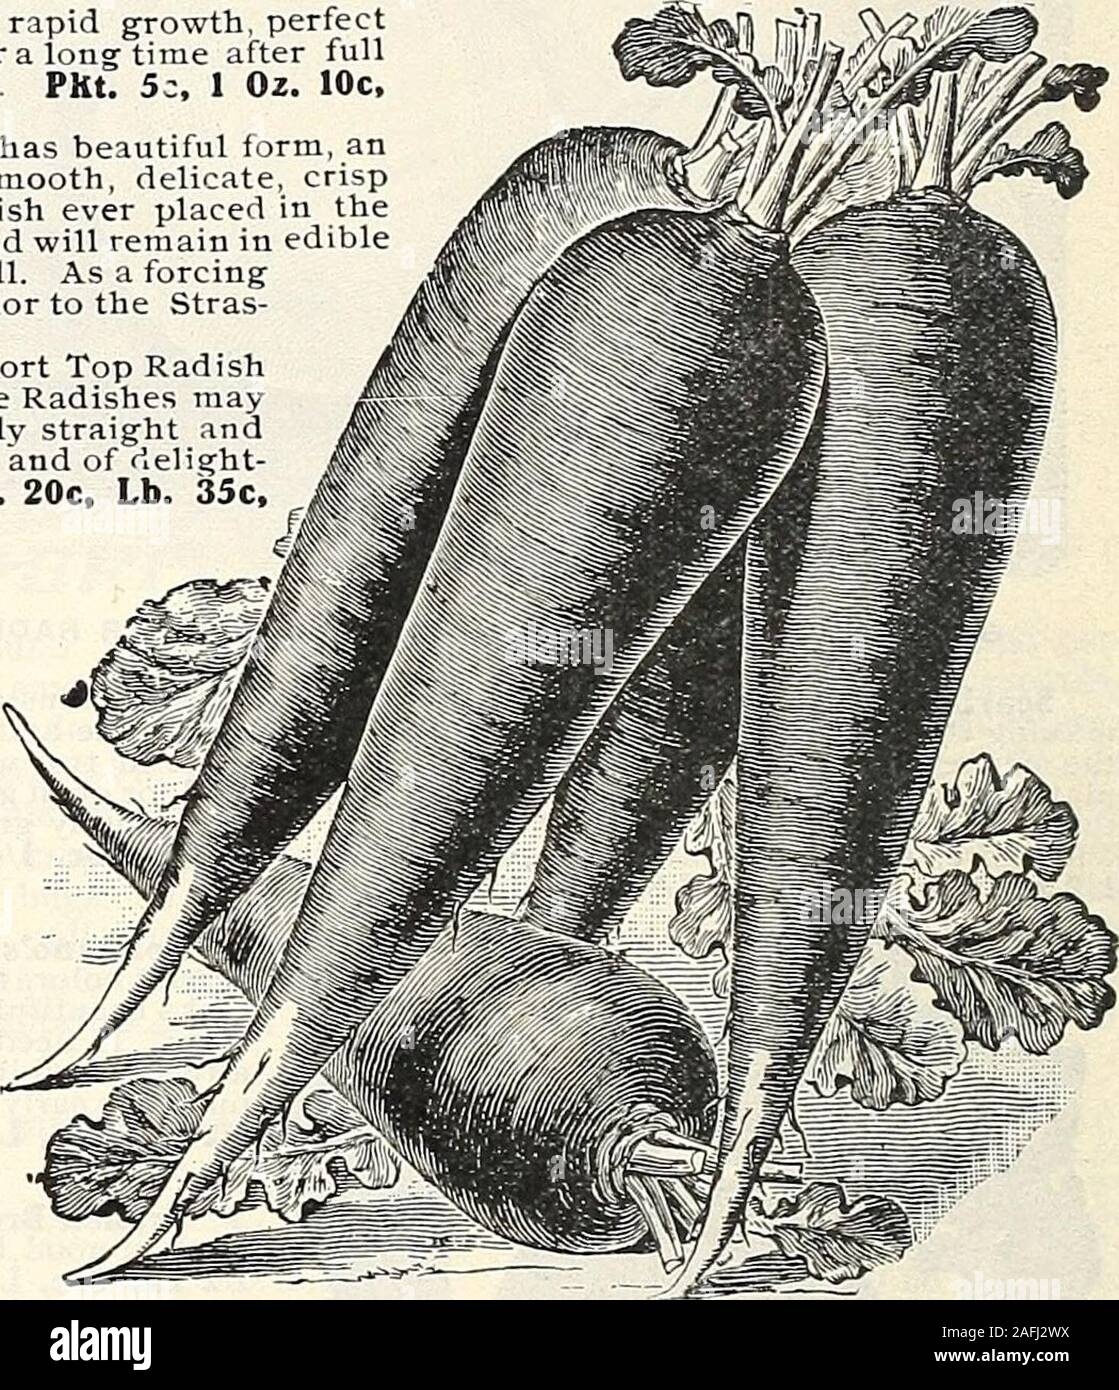 . J. Bolgiano & Son : 1818 1904. *?*<*****r*********?*$. NEW GLASS RADISH. NEW WHITE STRASBURG RADISH. §pffip BOLGITINOS NEW GL71SS RHDISH. Quick growth, small top, bright color. The best forcing Radish. This brilliant,uniform Radish is not so large as the Long Scarlet Radish, but is similiar in form;holds its size without losing its nice proportions; is slow to run to seed. Marketgardeners find it satisfies the market demand, and sells better than other longRadishes. Plant at once and see what a good Radish it is. For sale in our sealedpackages. PKt. 5c, Oz. 10c, 1/4 Lb. 15c, 1/2 Lb. 25c, Stock Photo